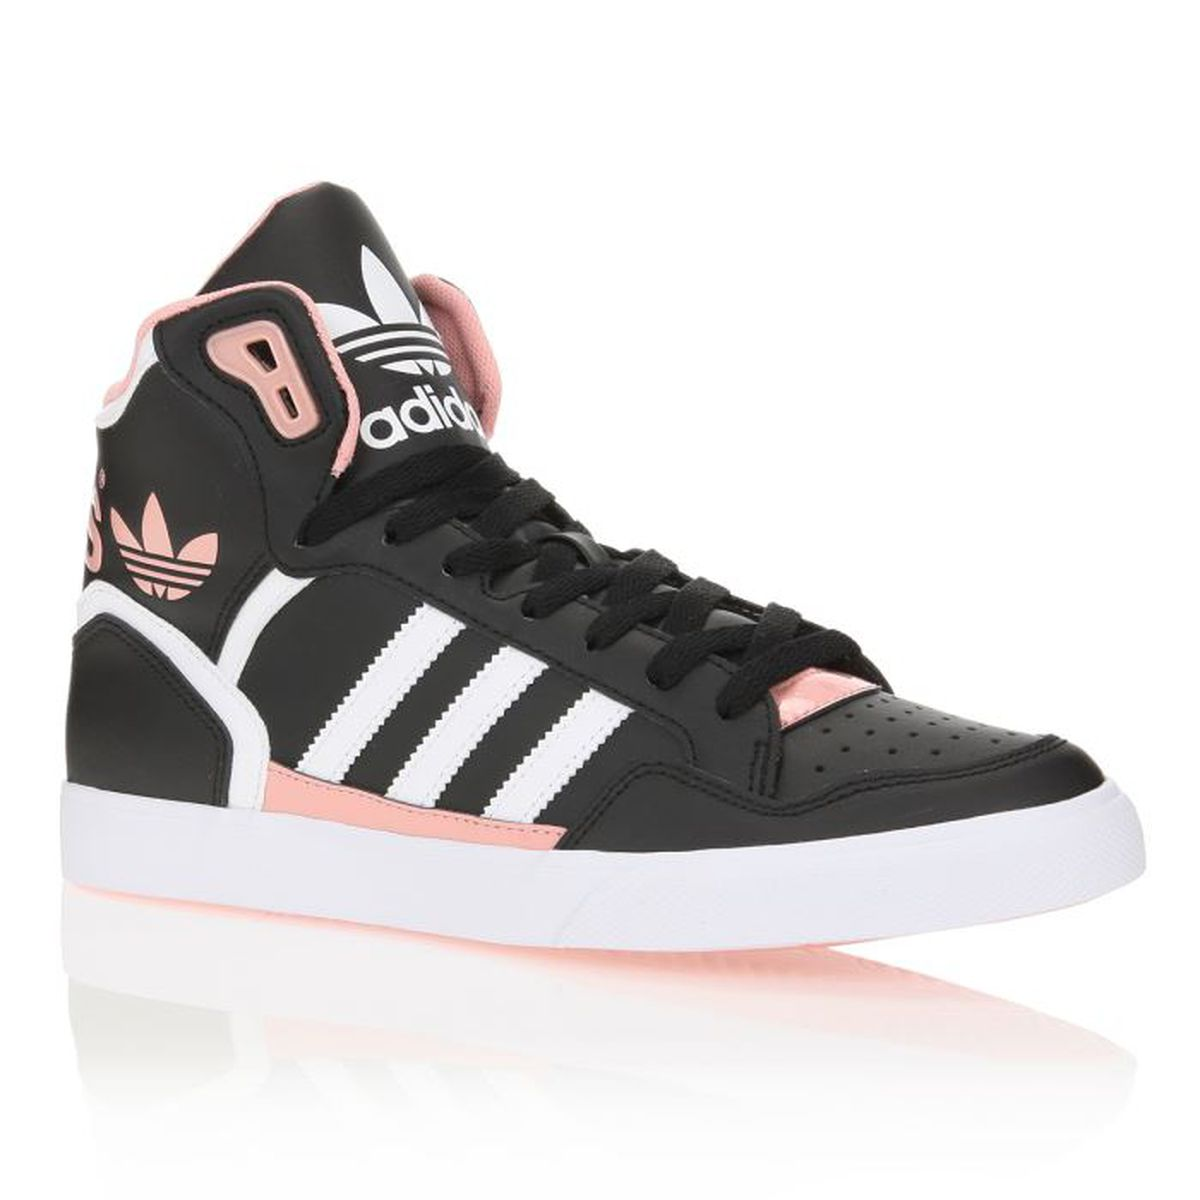 ADIDAS ORIGINALS Baskets Extaball Femme Noir, blanc et rose